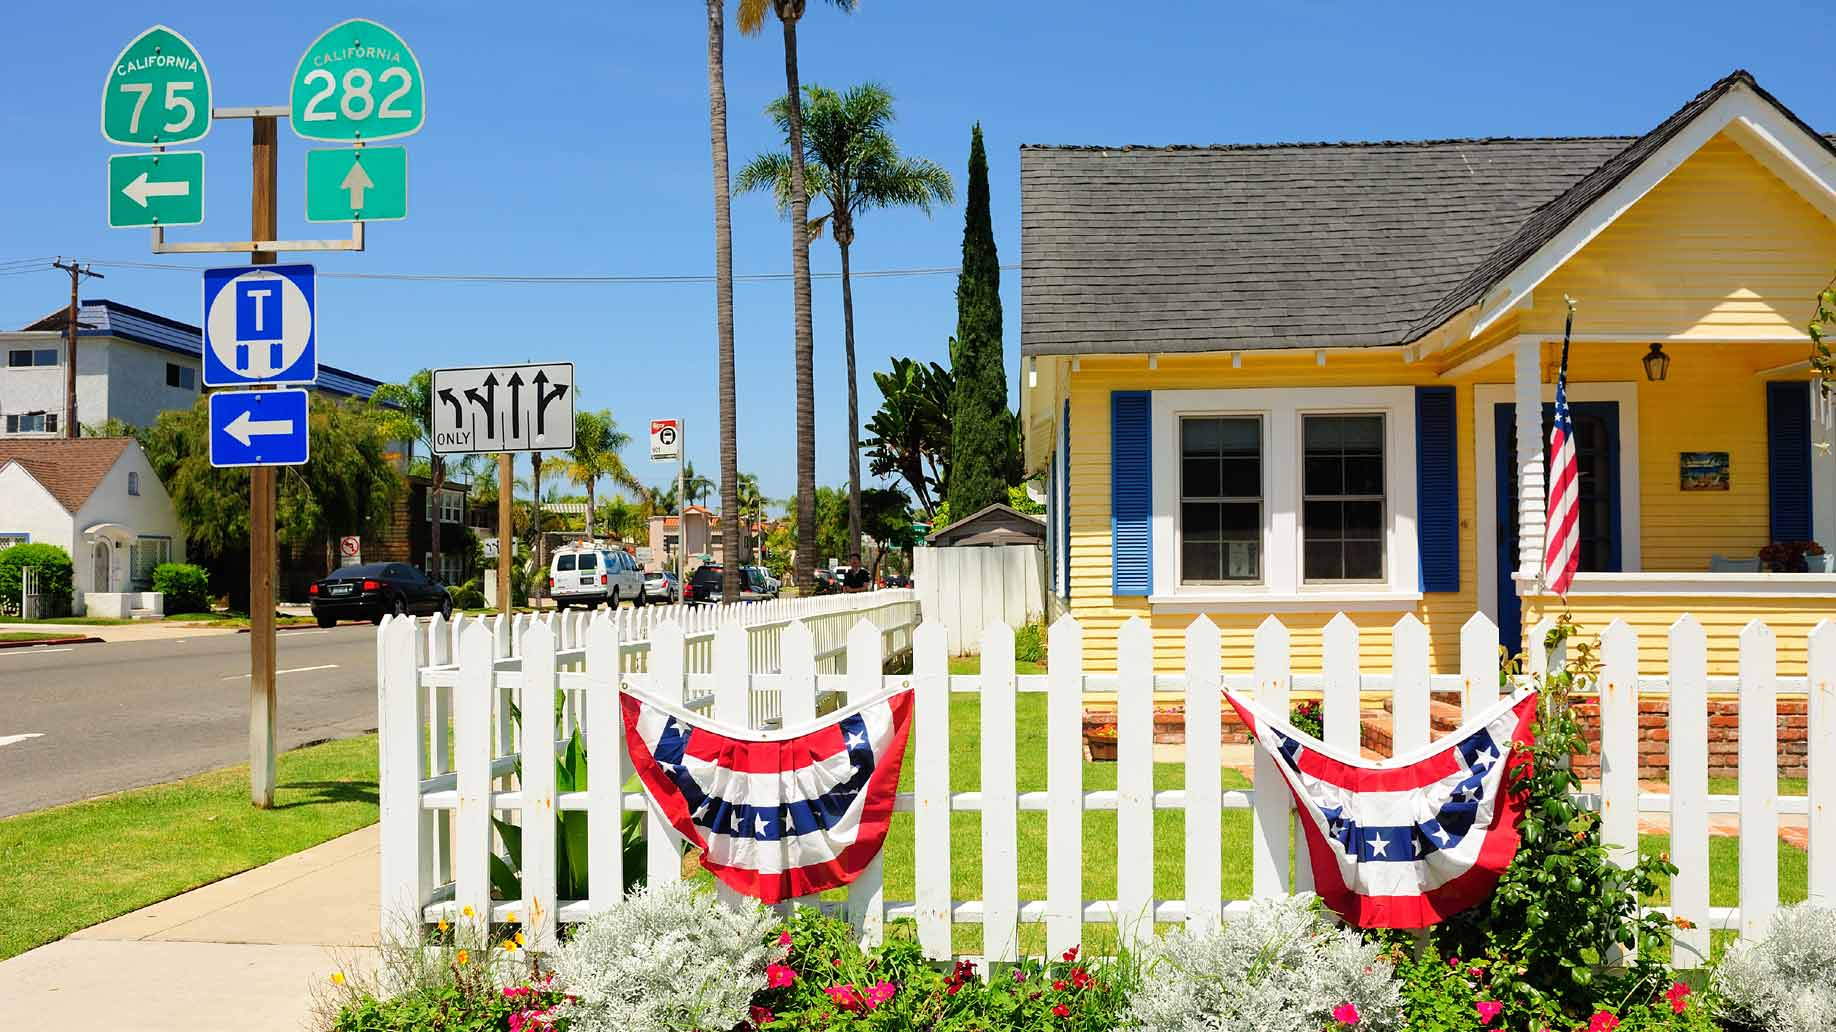 america house with bunting, photo by WaitForLight